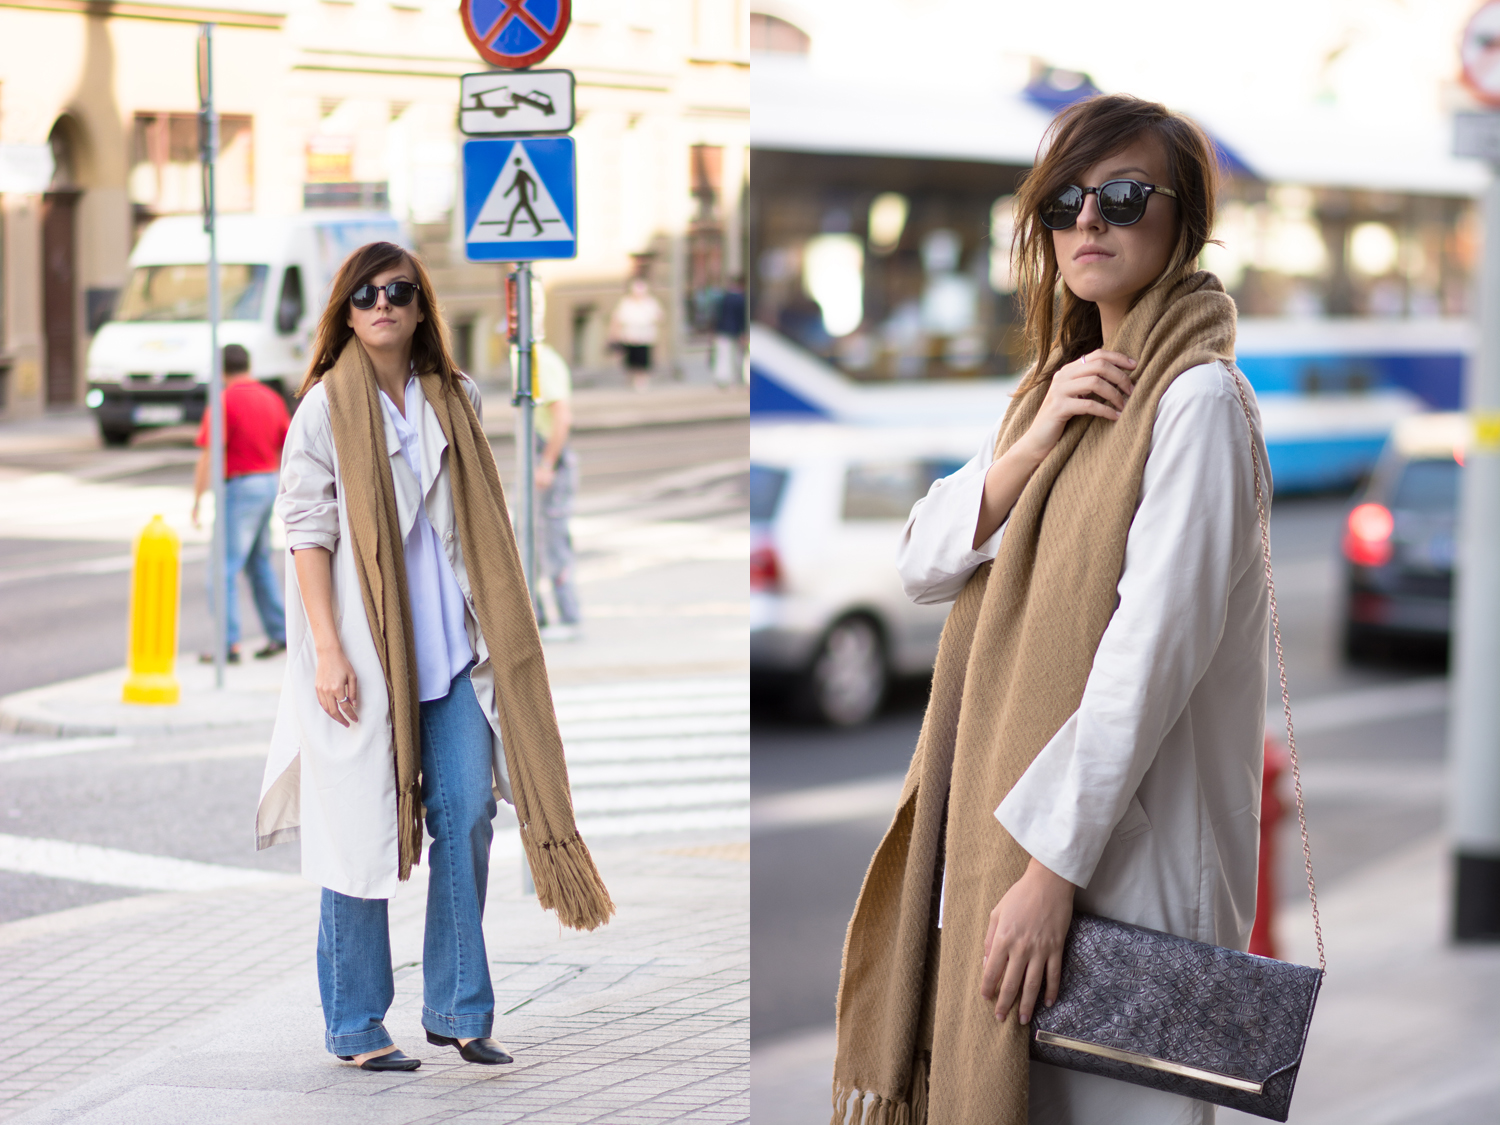 Fashion blogger street style outfit with trench oversize coat, big woolen camel scarf, white shirt and flare denim pants.